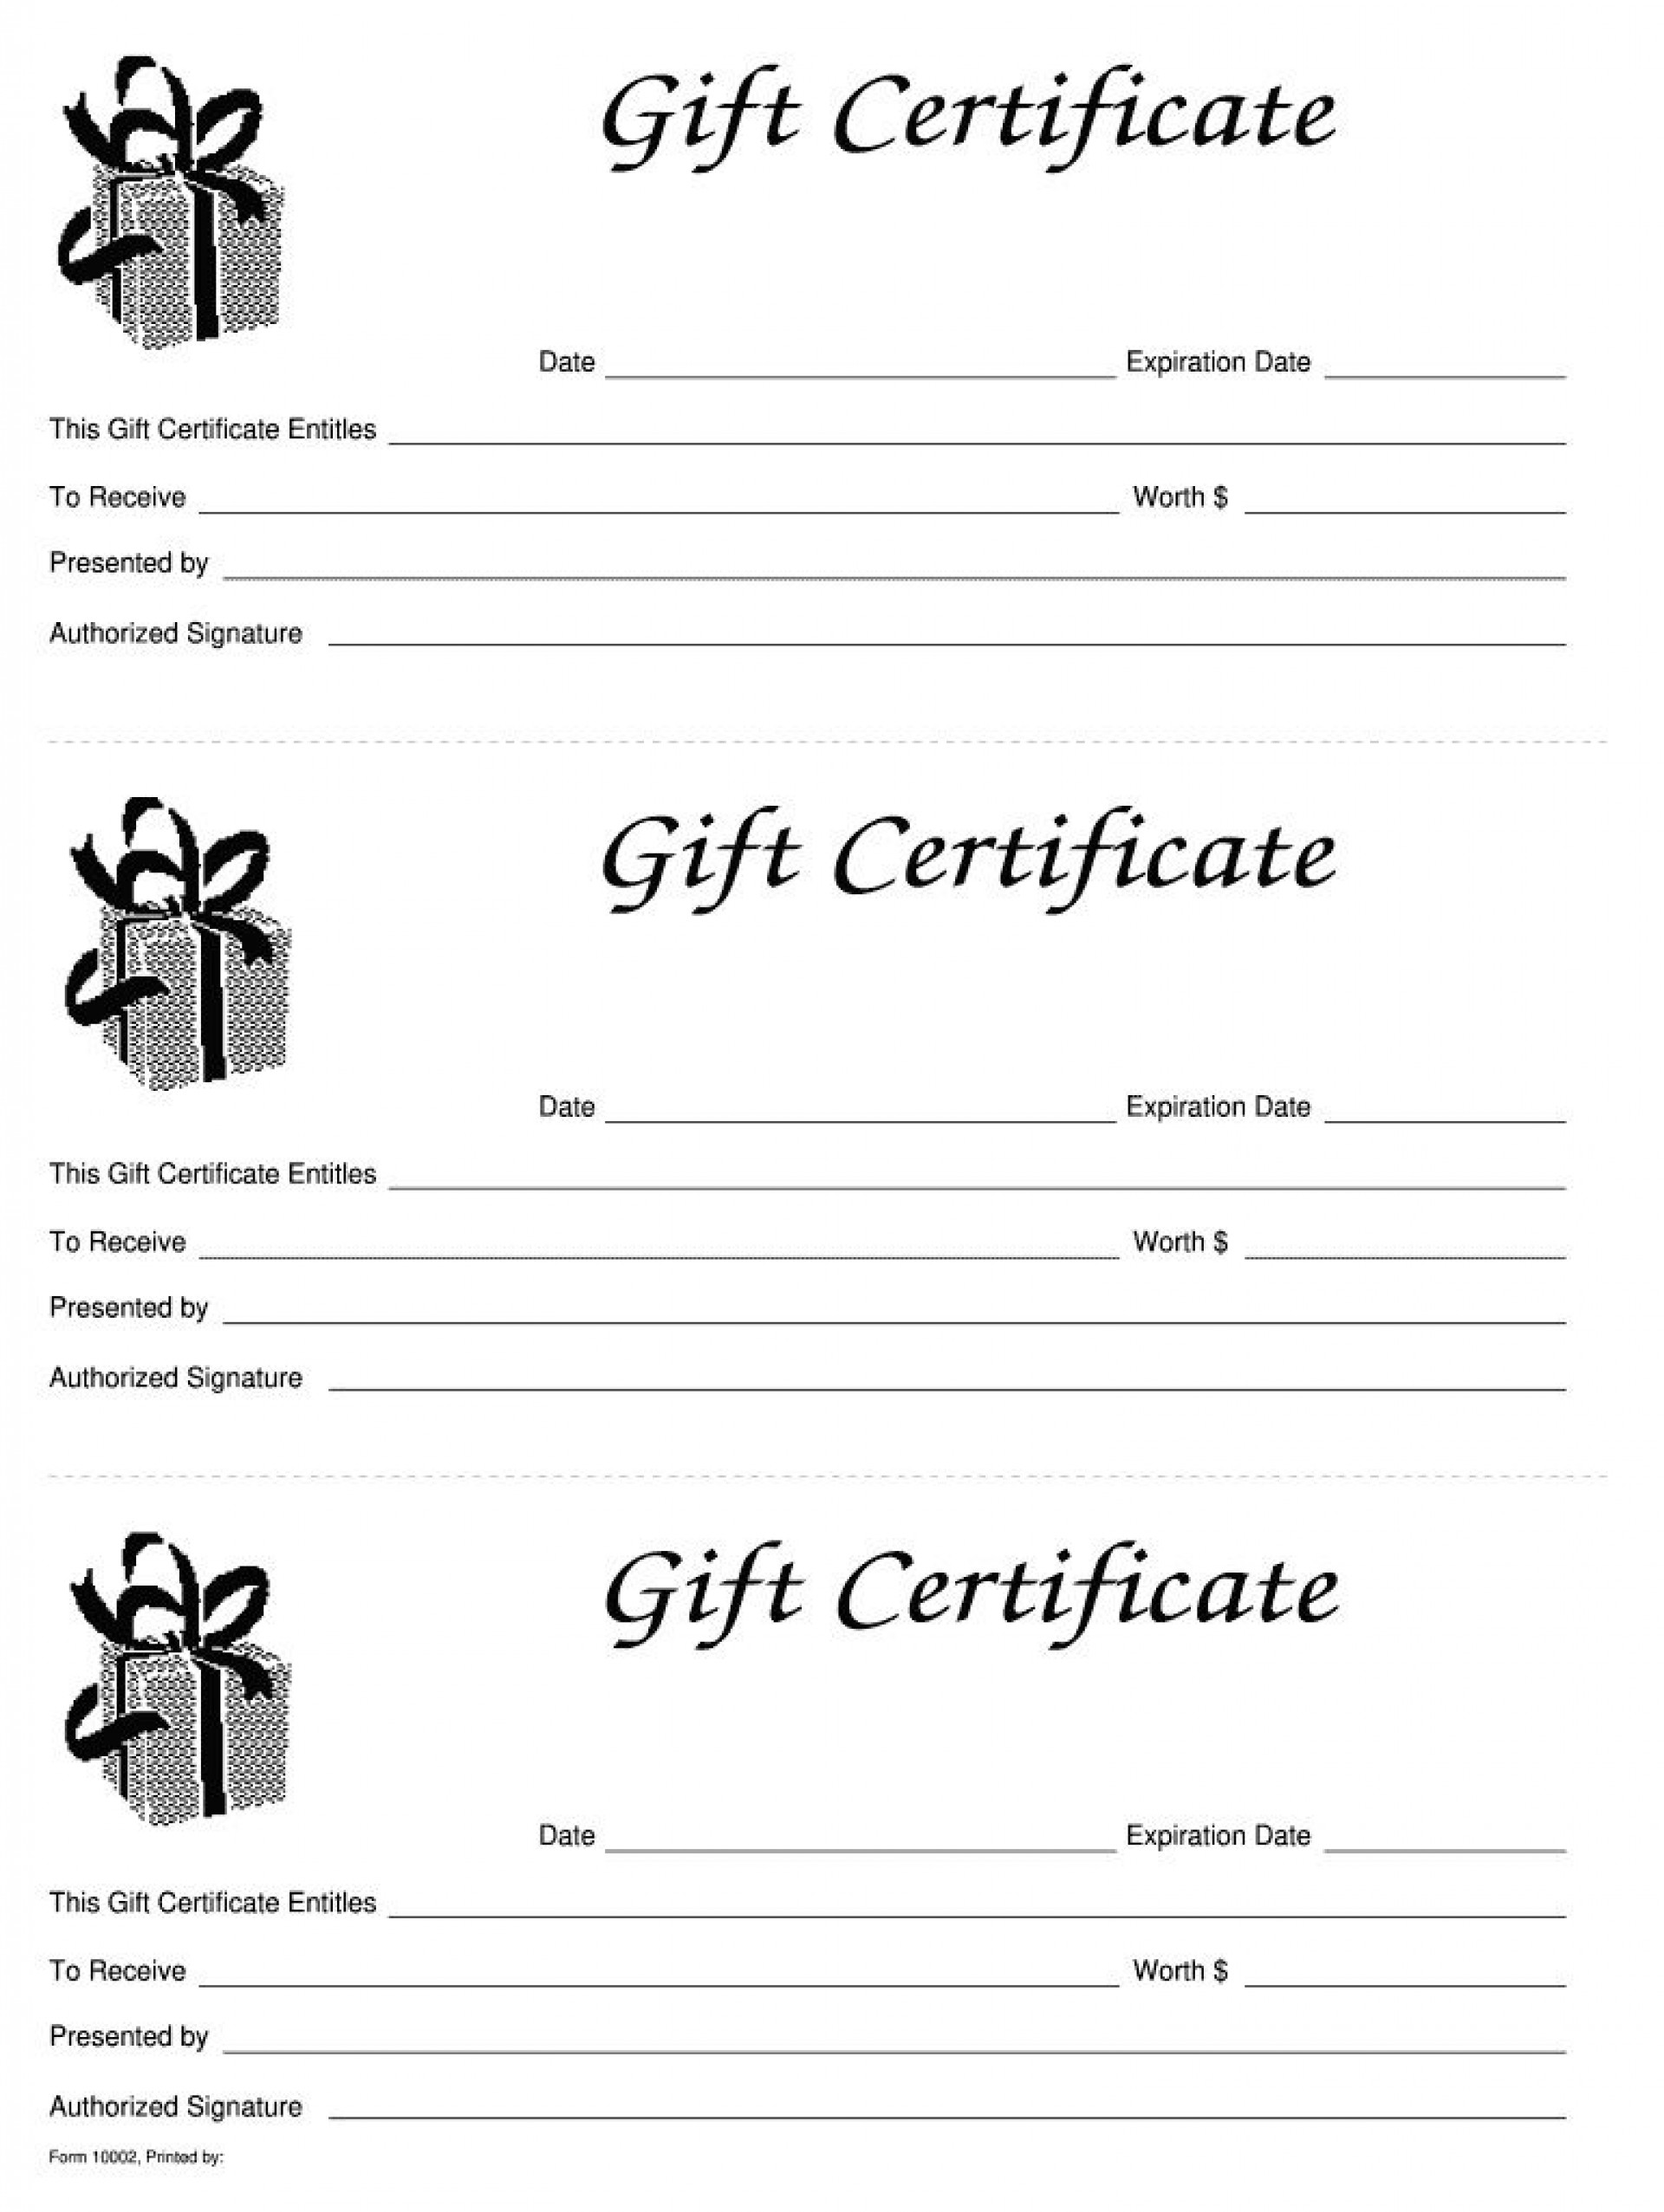 007 Marvelou Printable Gift Certificate Template Design  Card Free Christma Massage1920